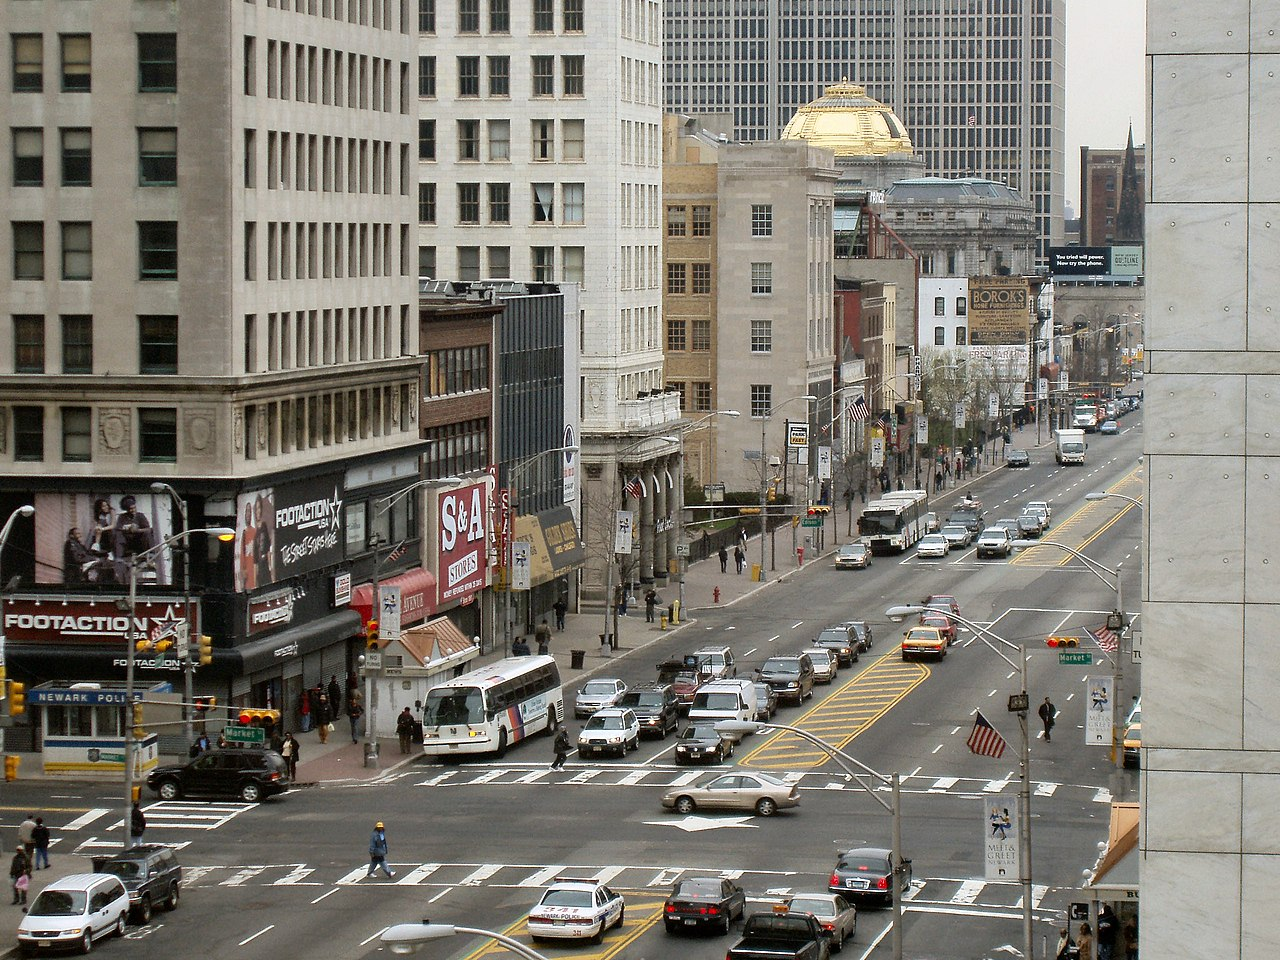 Newark - Best Tourism City To Explore in New Jersey